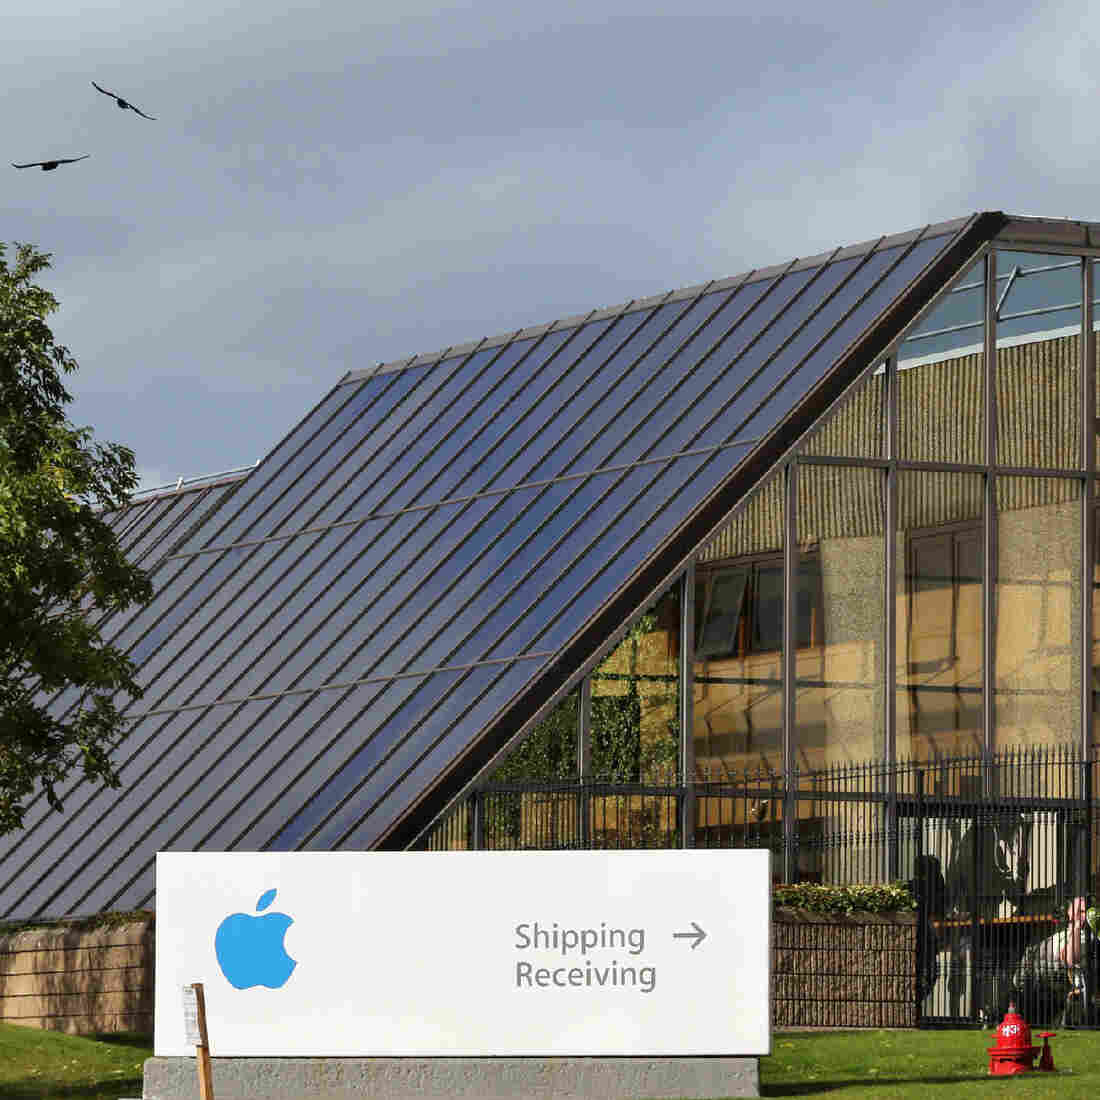 The Apple campus in Cork, southern Ireland, employs 4,000 people — though its financial benefits are felt across the city. But Ireland's attractive tax laws — which have lured other industry leaders — are now under scrutiny.